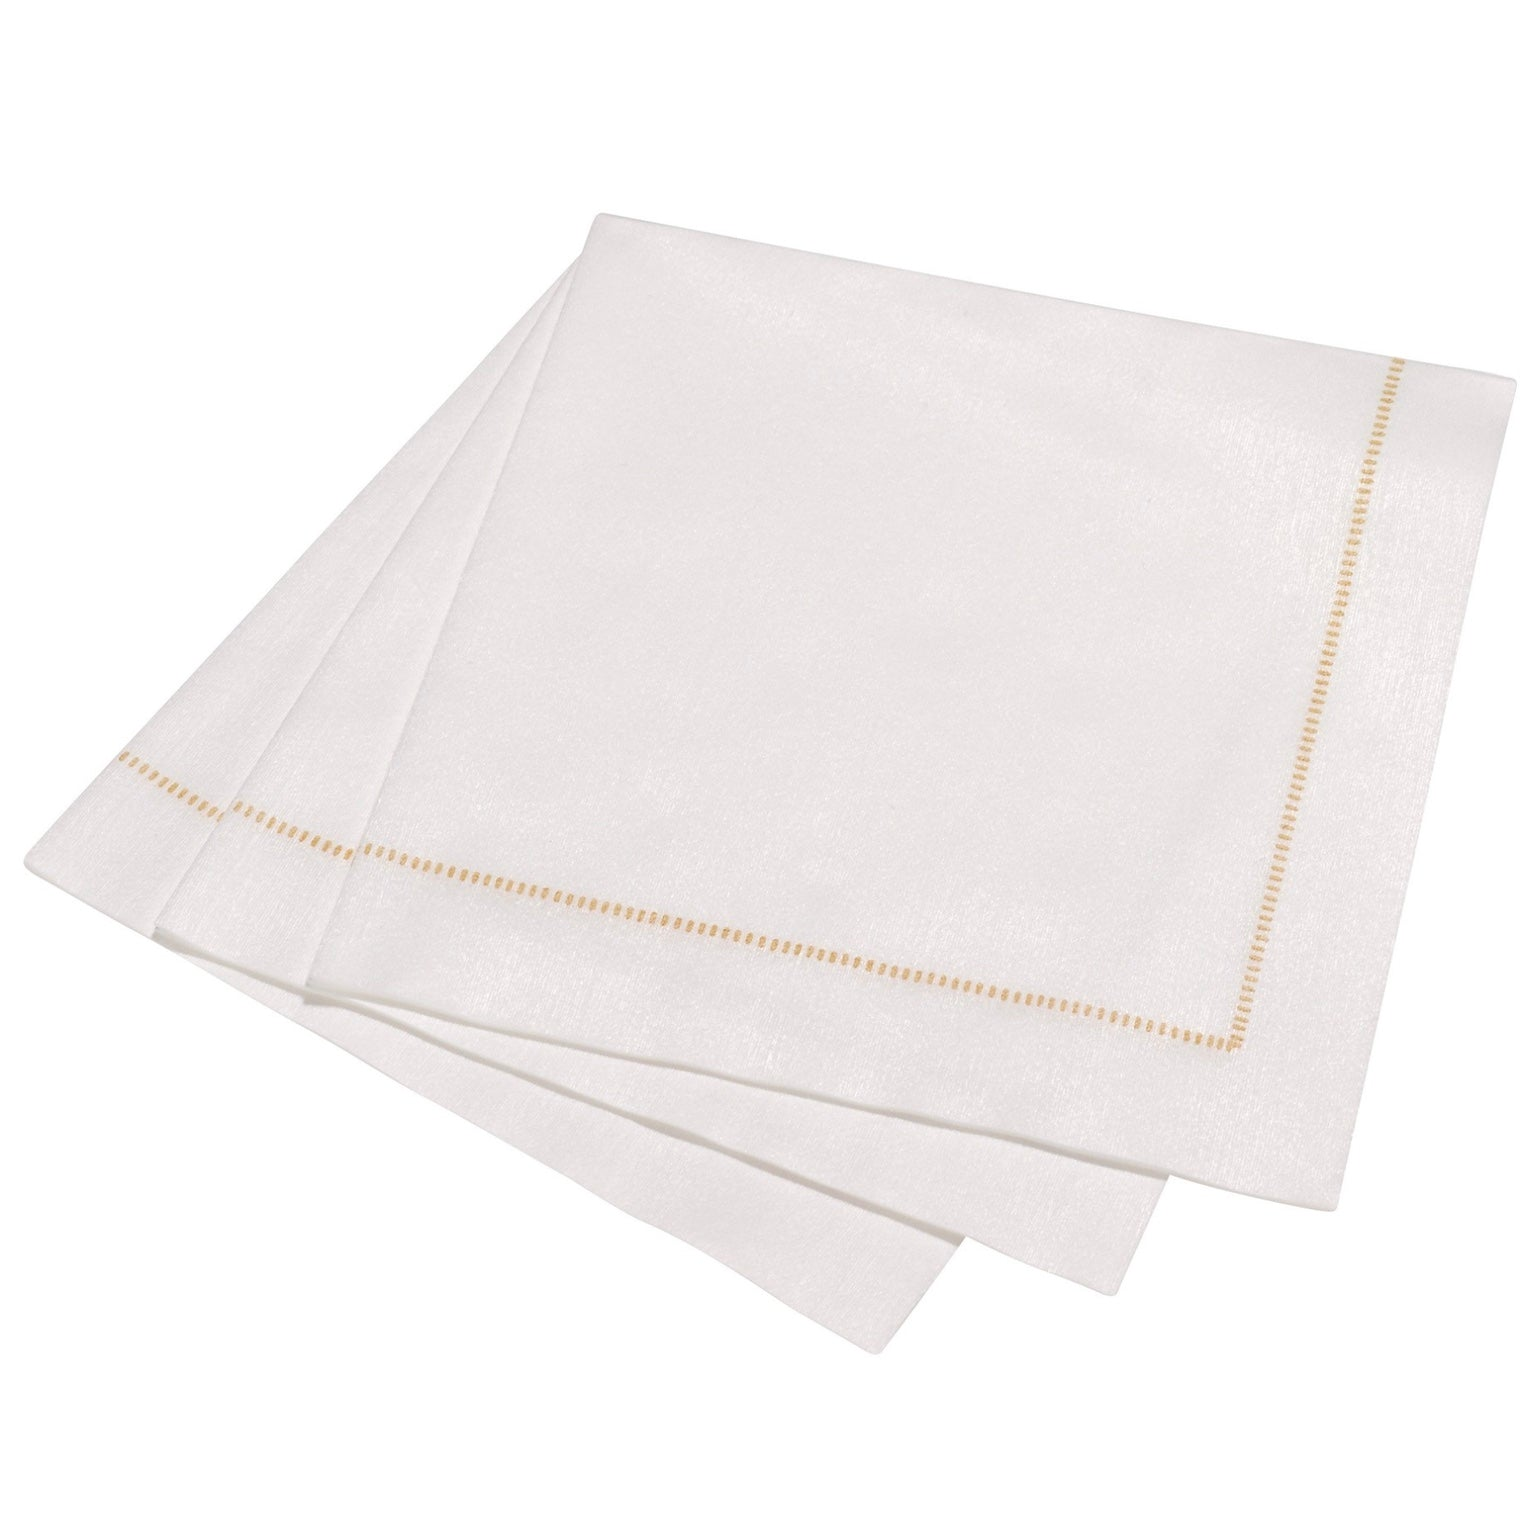 "The Napkins ""Hemstitch"" Dinner Napkin 